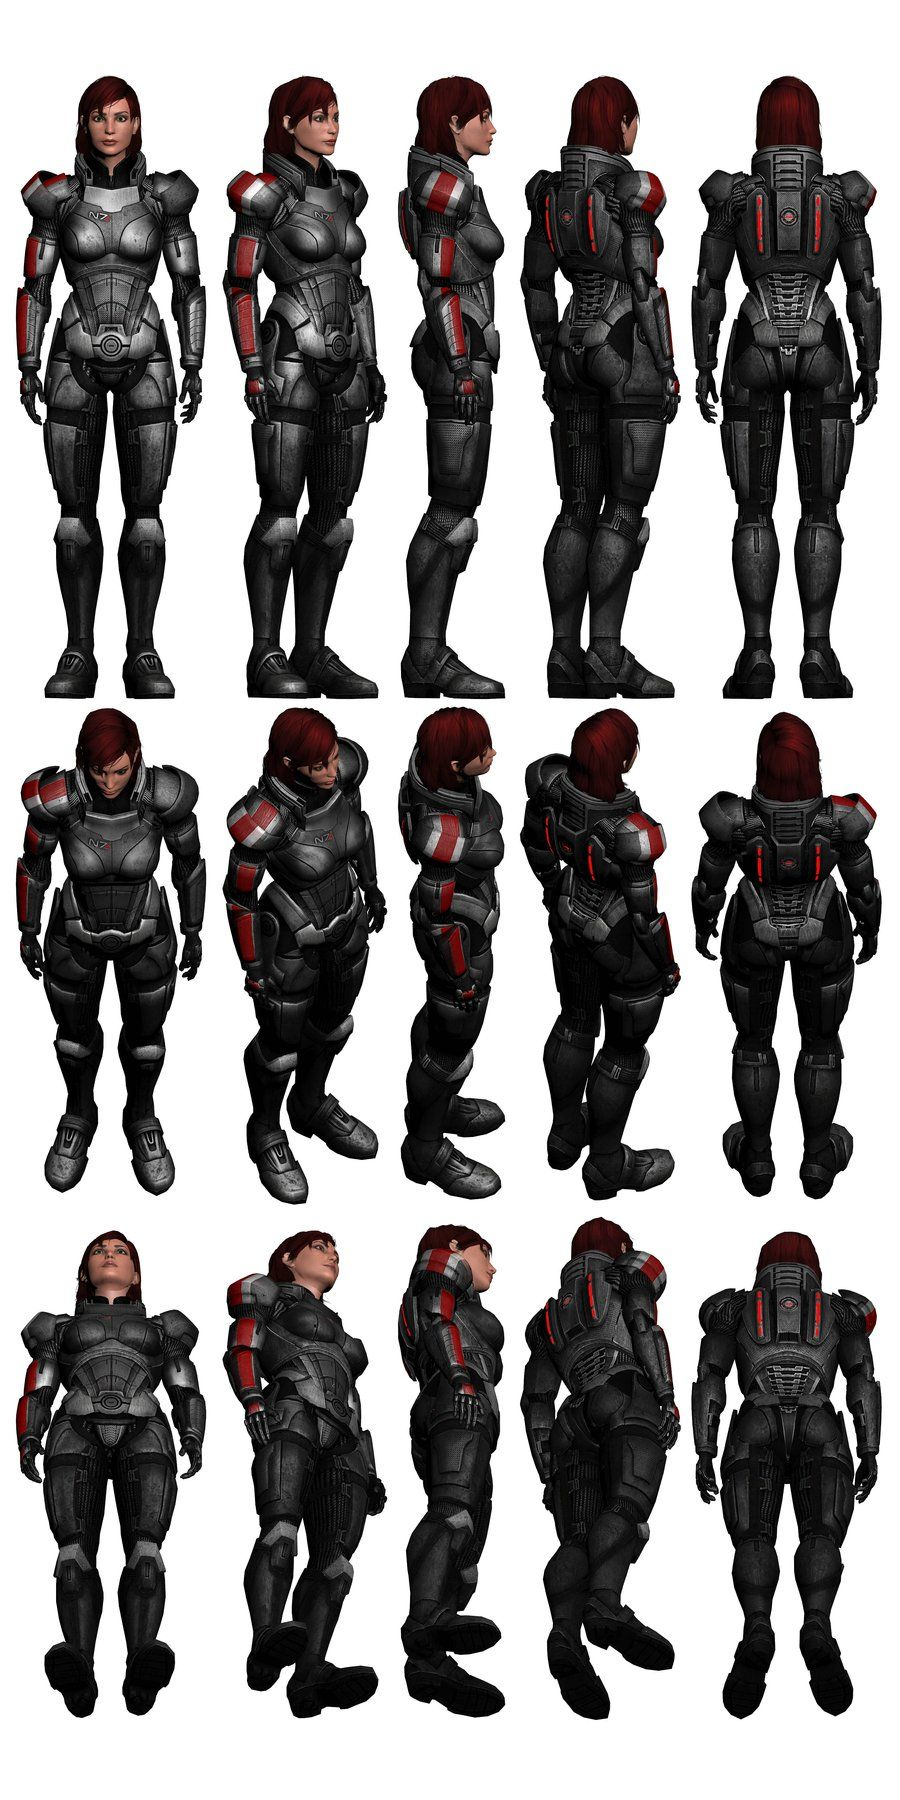 Mass effect 3 female shepard n7 armour reference by troodon80 on mass effect 3 female shepard n7 armour reference by troodon80 on deviantart maxwellsz